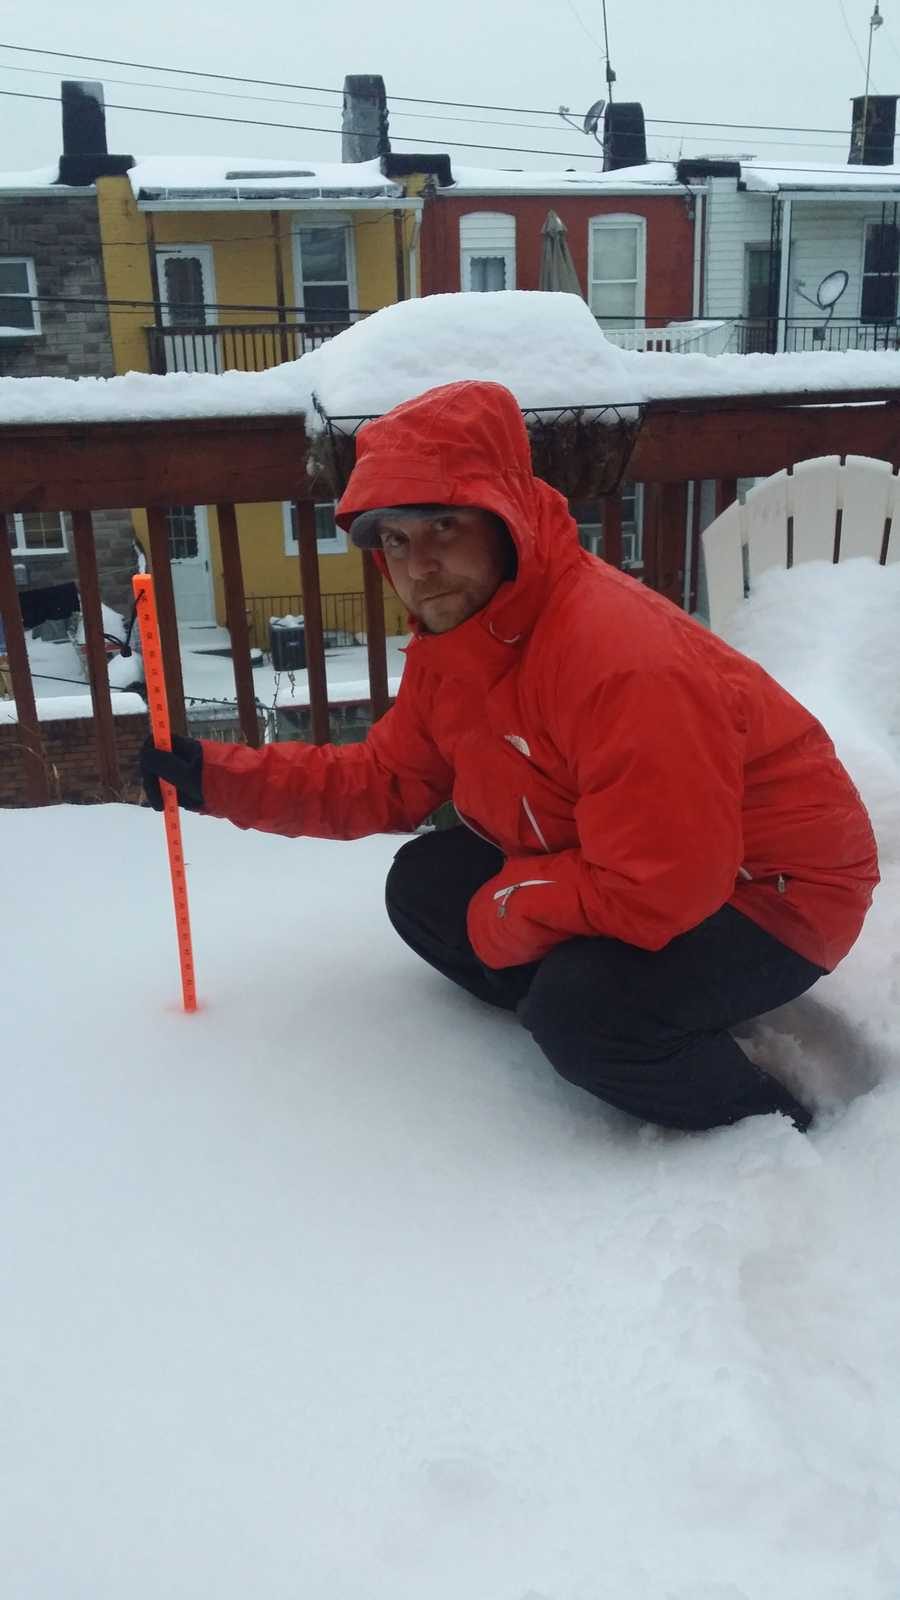 14 inches of snow measured on a two-story deck in Canton before the rain began.